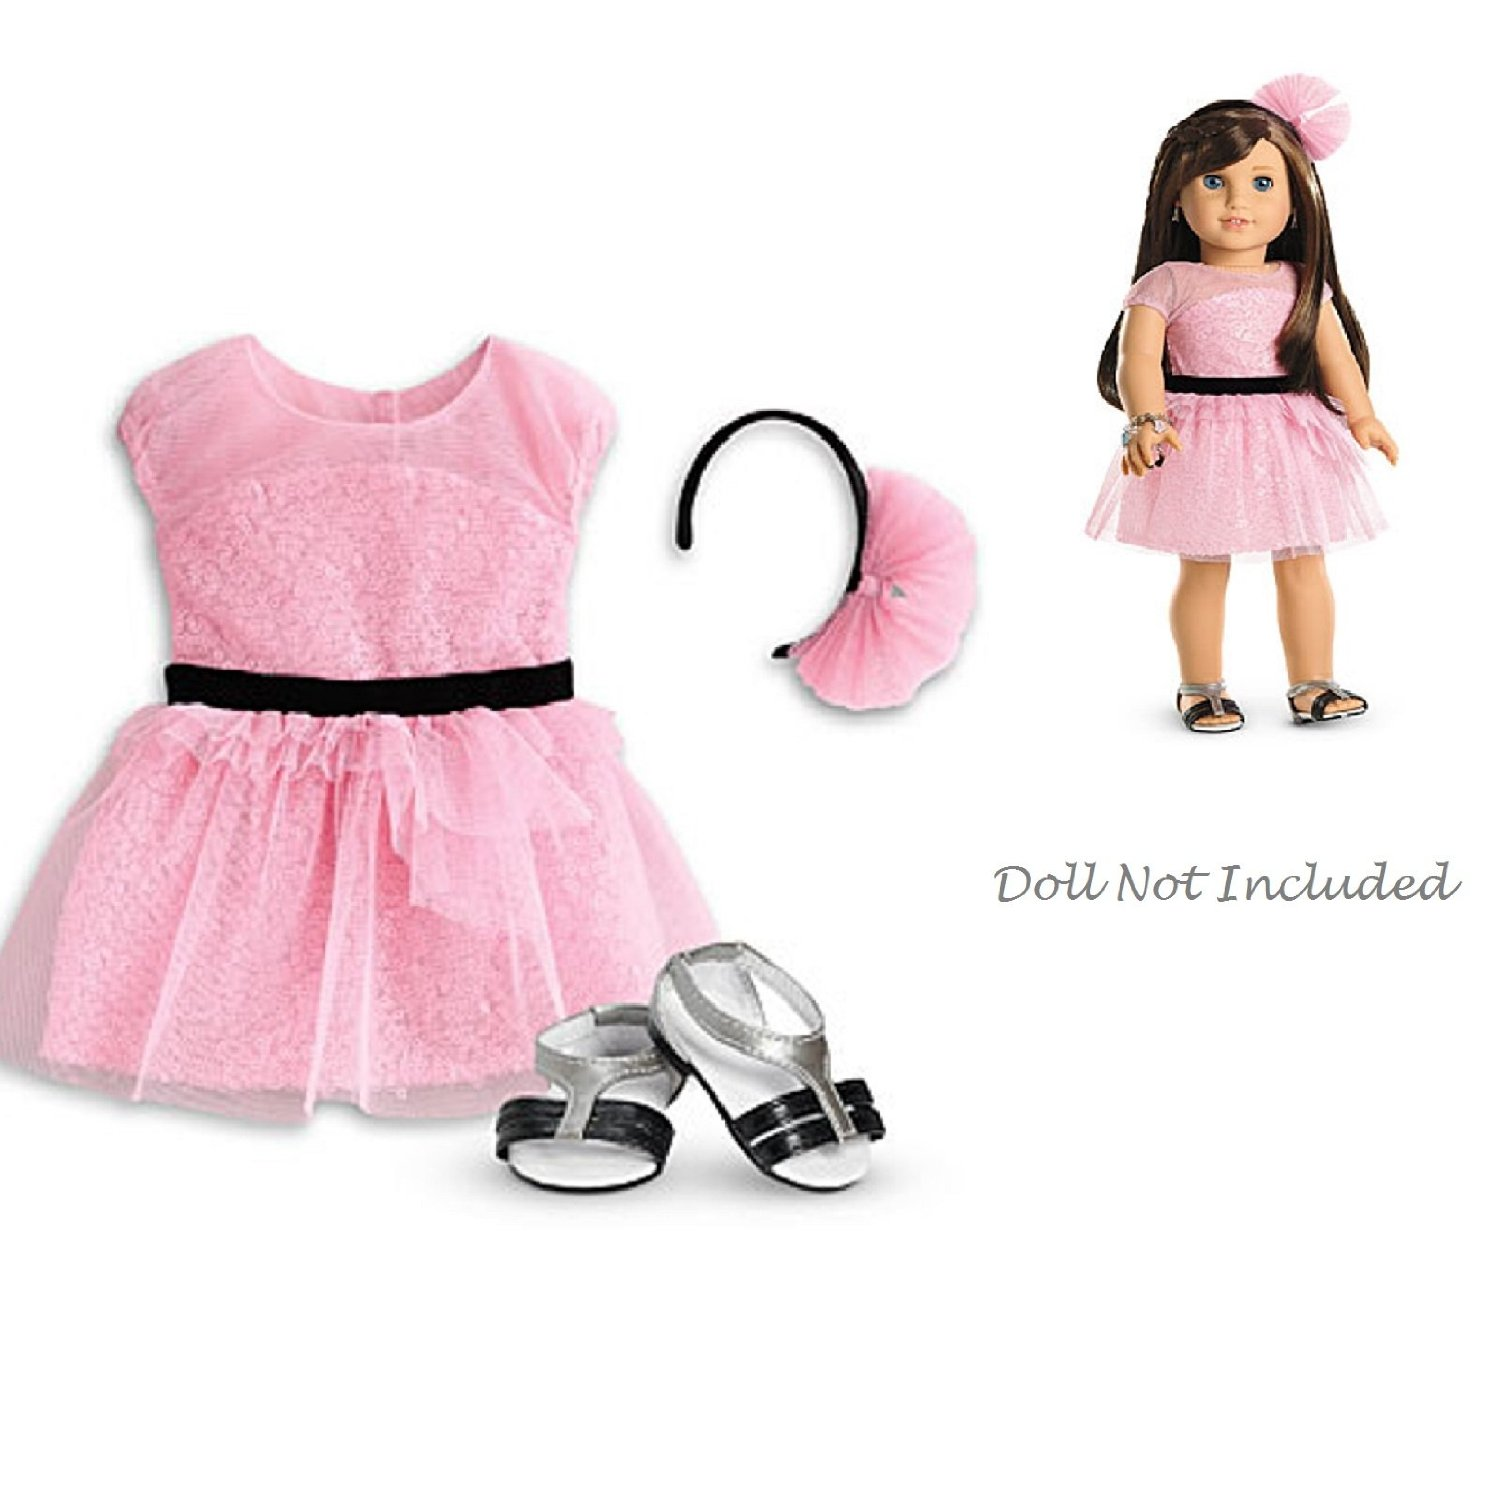 American Girl Grace - Grace's Opening-Night Outfit for Dolls - American Girl of 2015